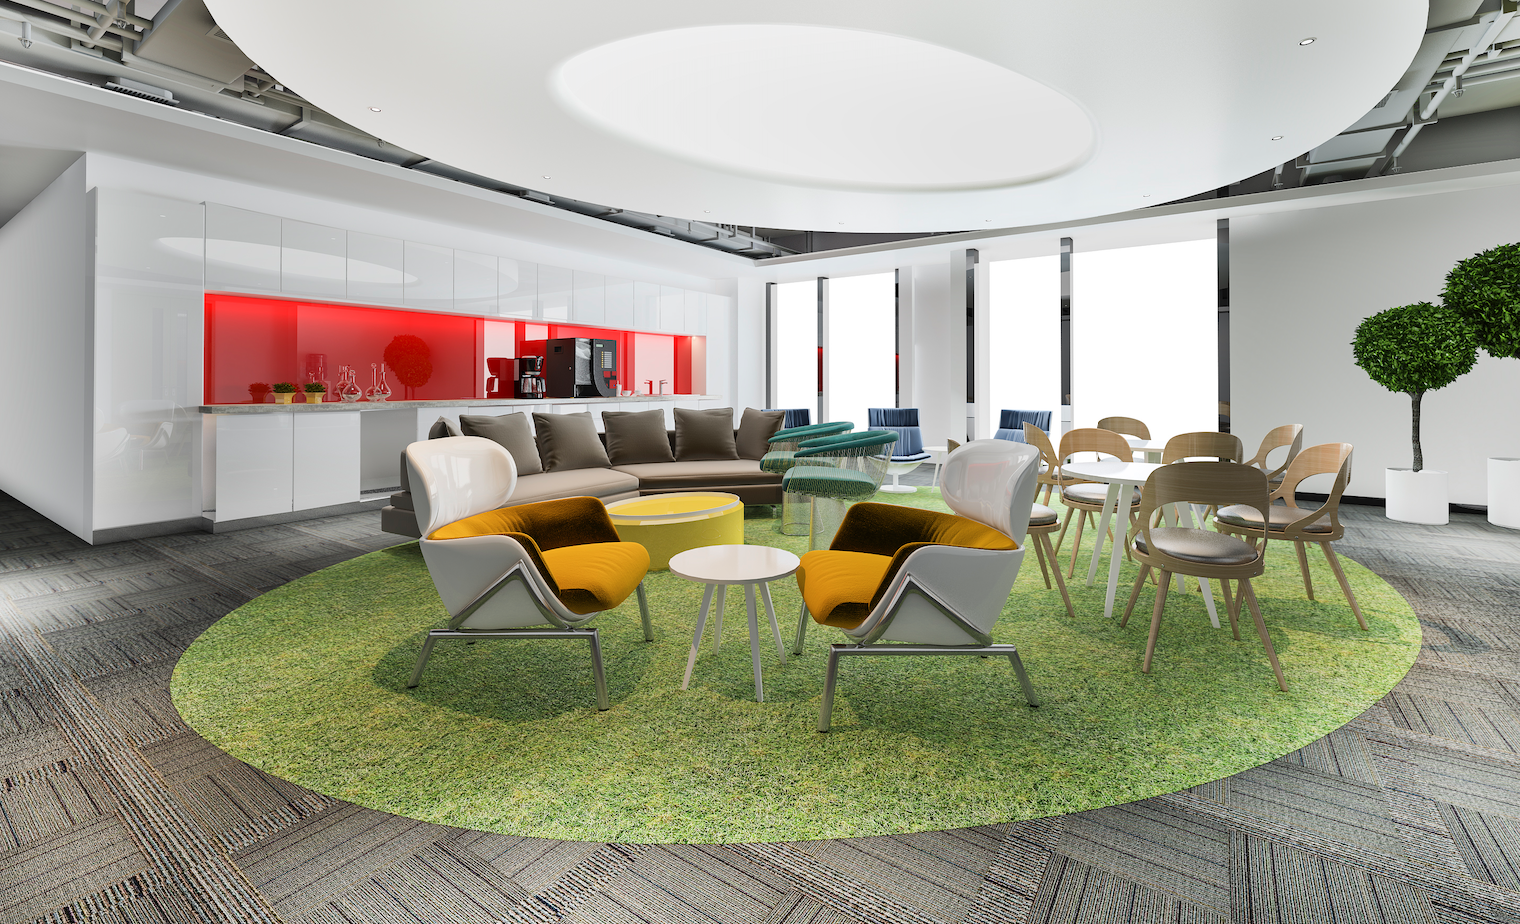 9 Questions to Help You Determine Your Ideal Office Space on Demand